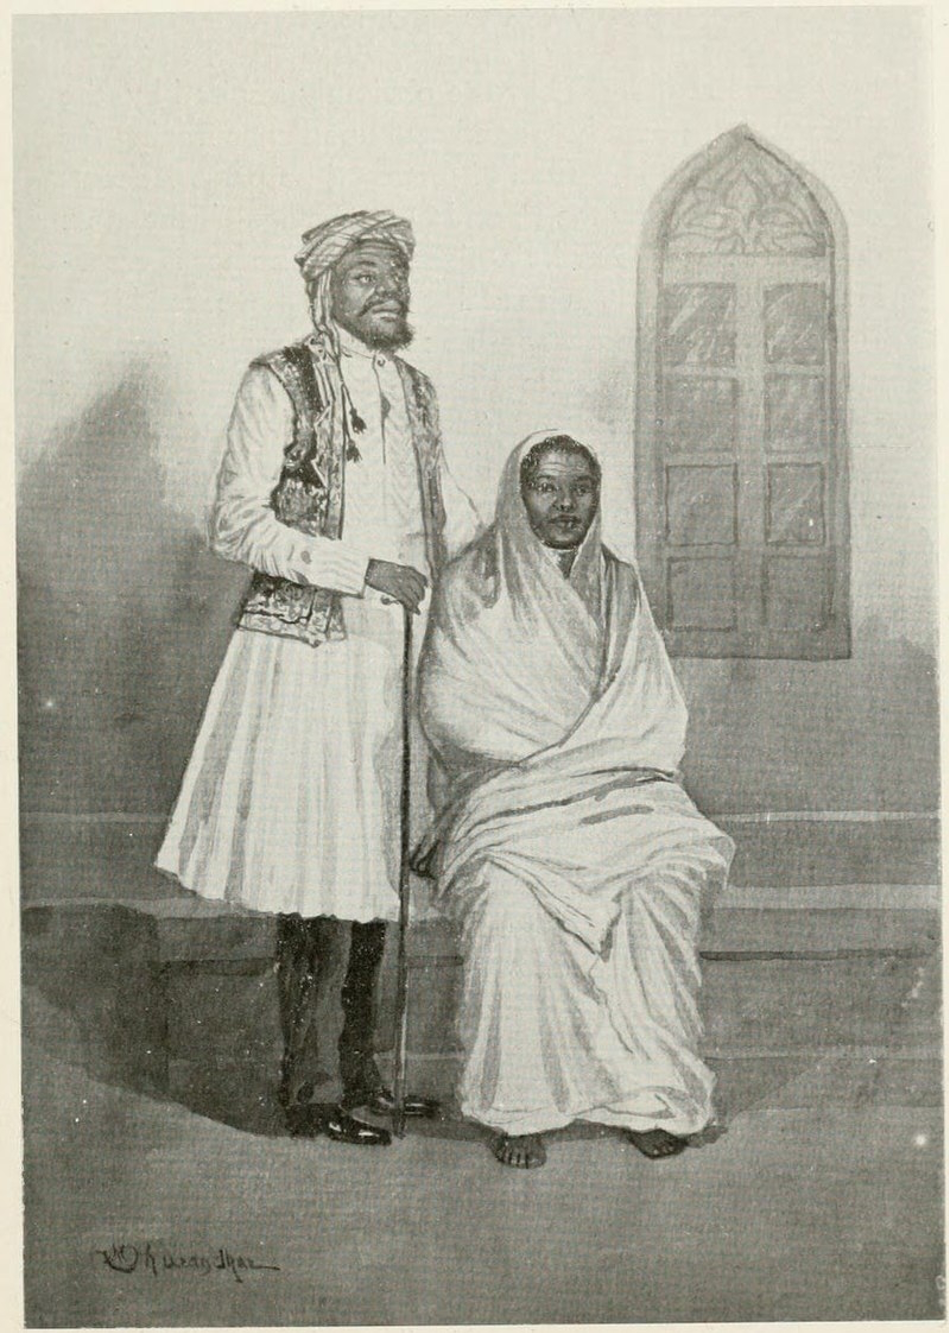 Fig. 2: During the late nineteenth and early twentieth centuries, depicting different 'types' of people was an increasingly popular theme in drawings and photography. The above image tries to represent a typical Siddi family by displaying them in their most identifiable attire and accessories (Courtesy: M.V. Dhurandhar; public domain)